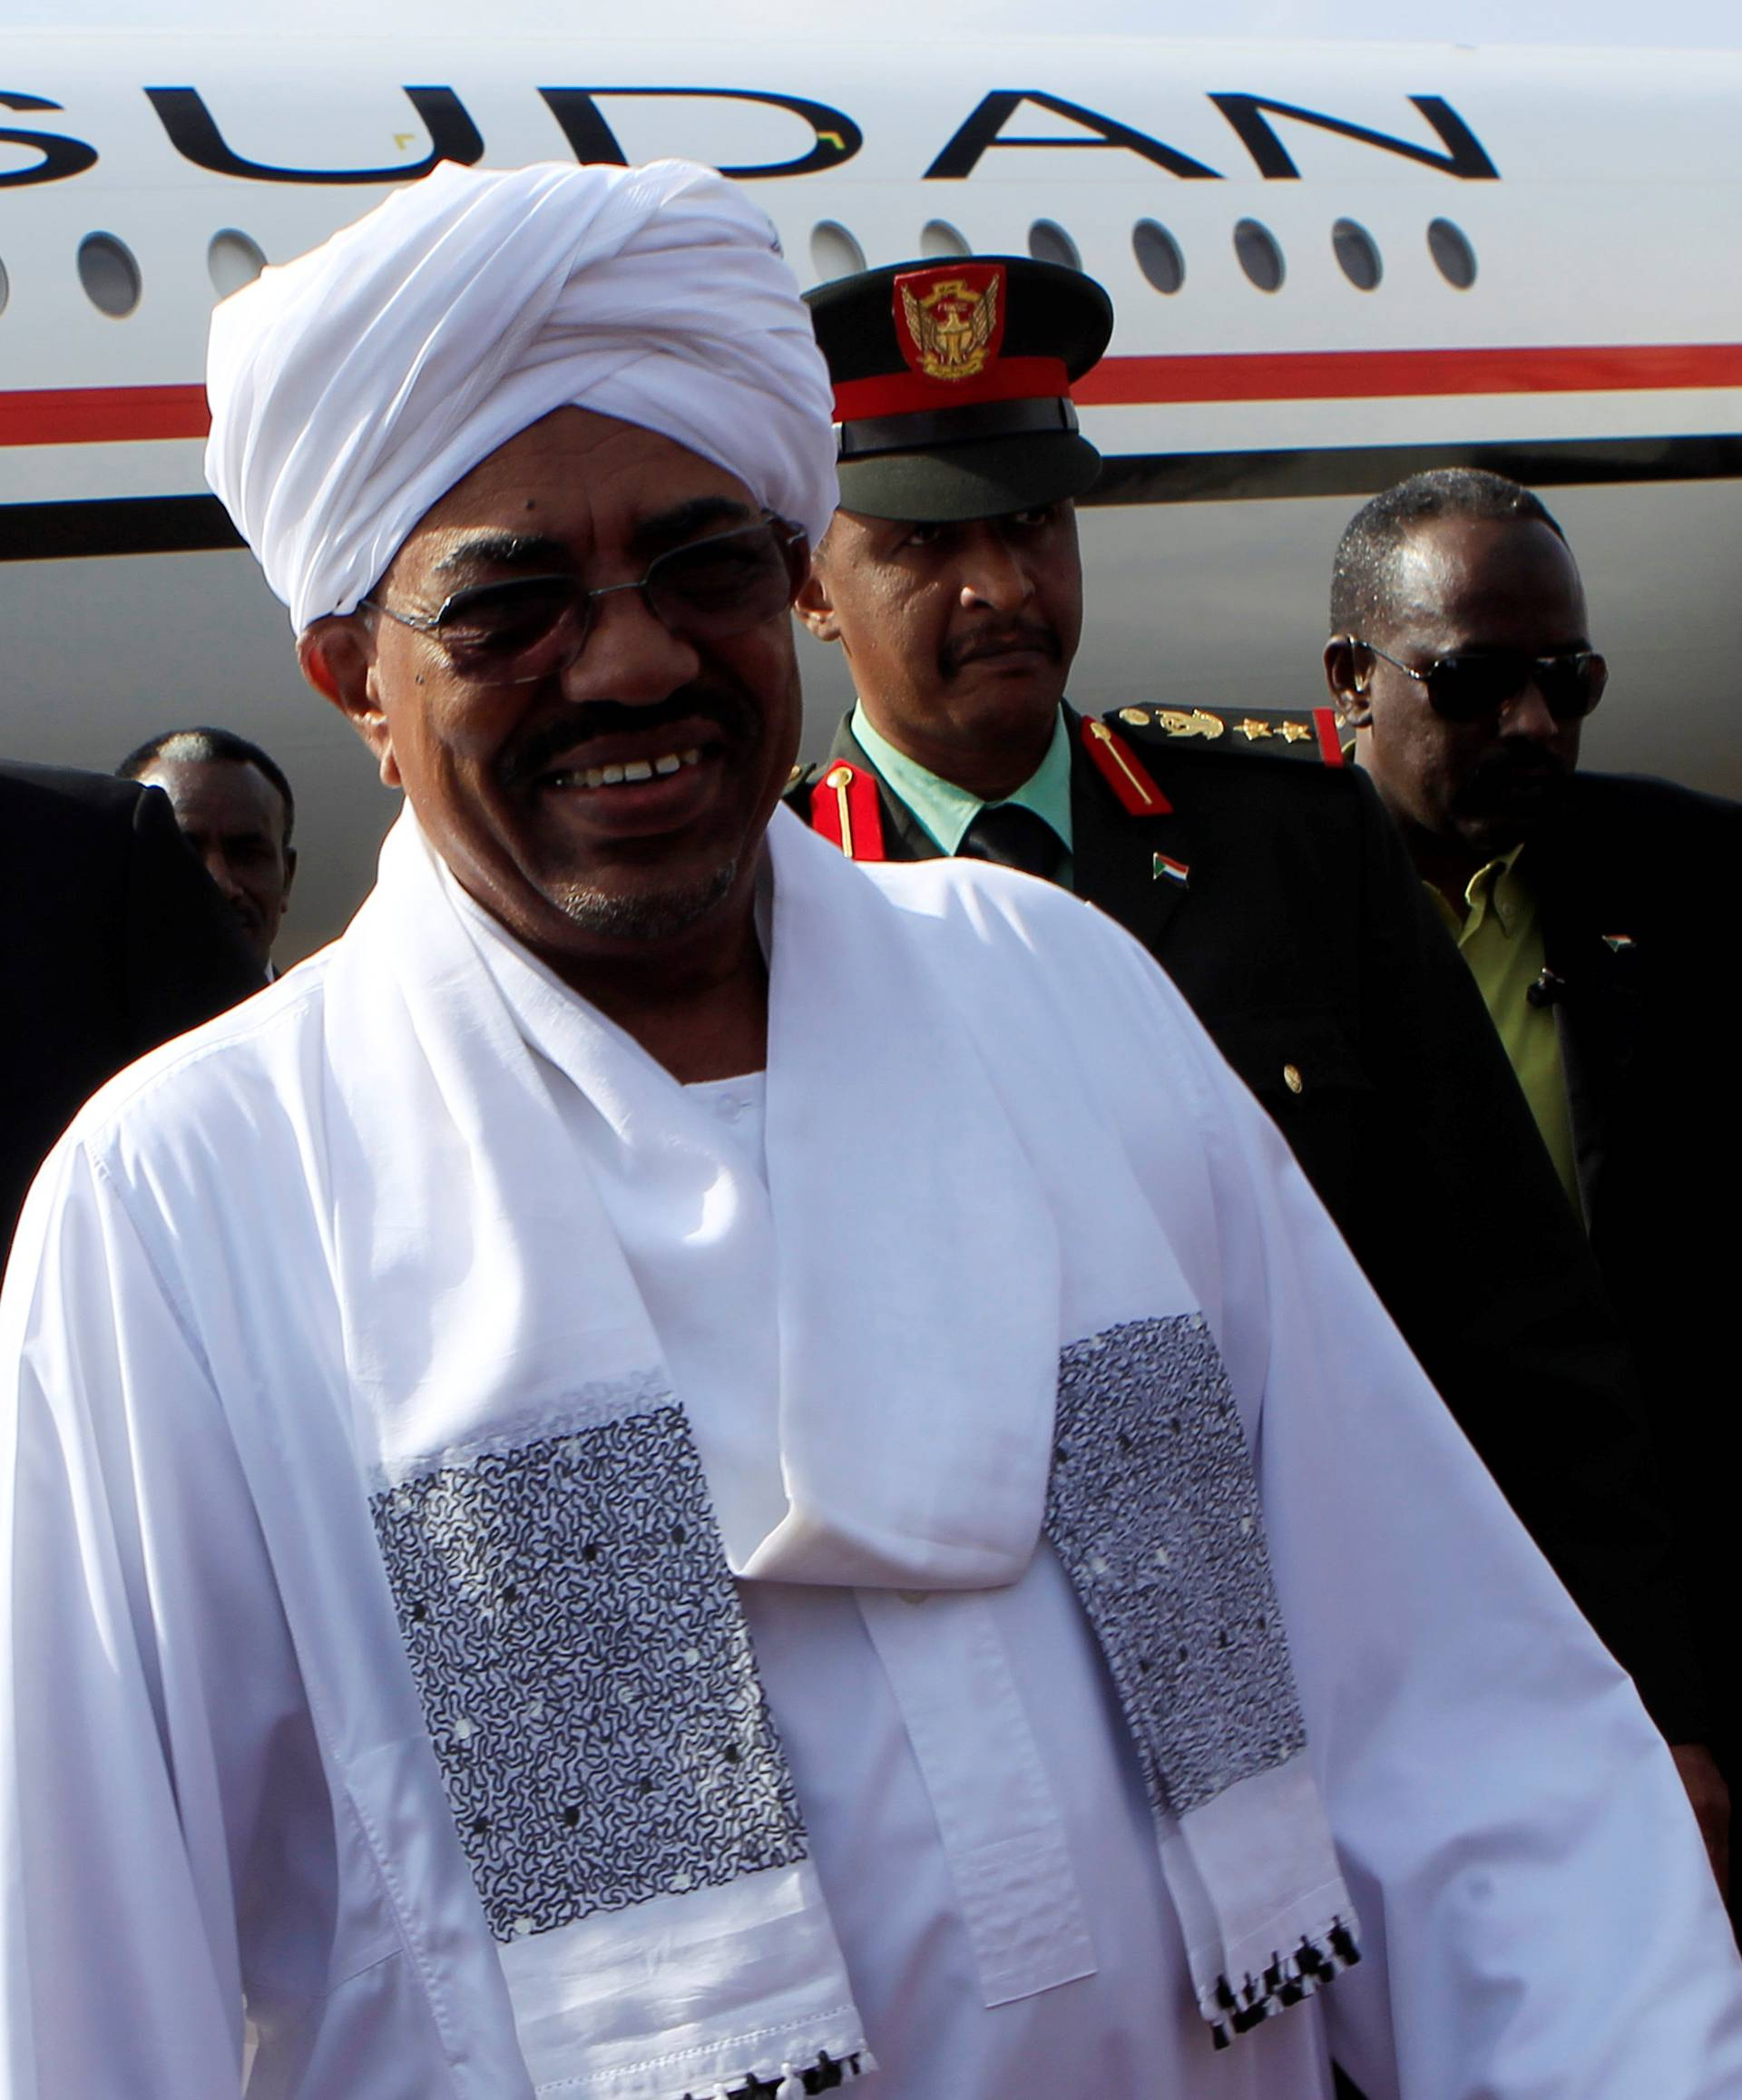 FILE PHOTO: Sudan's President Bashir is welcomed by First Vice President Taha after arriving at Khartoum Airport